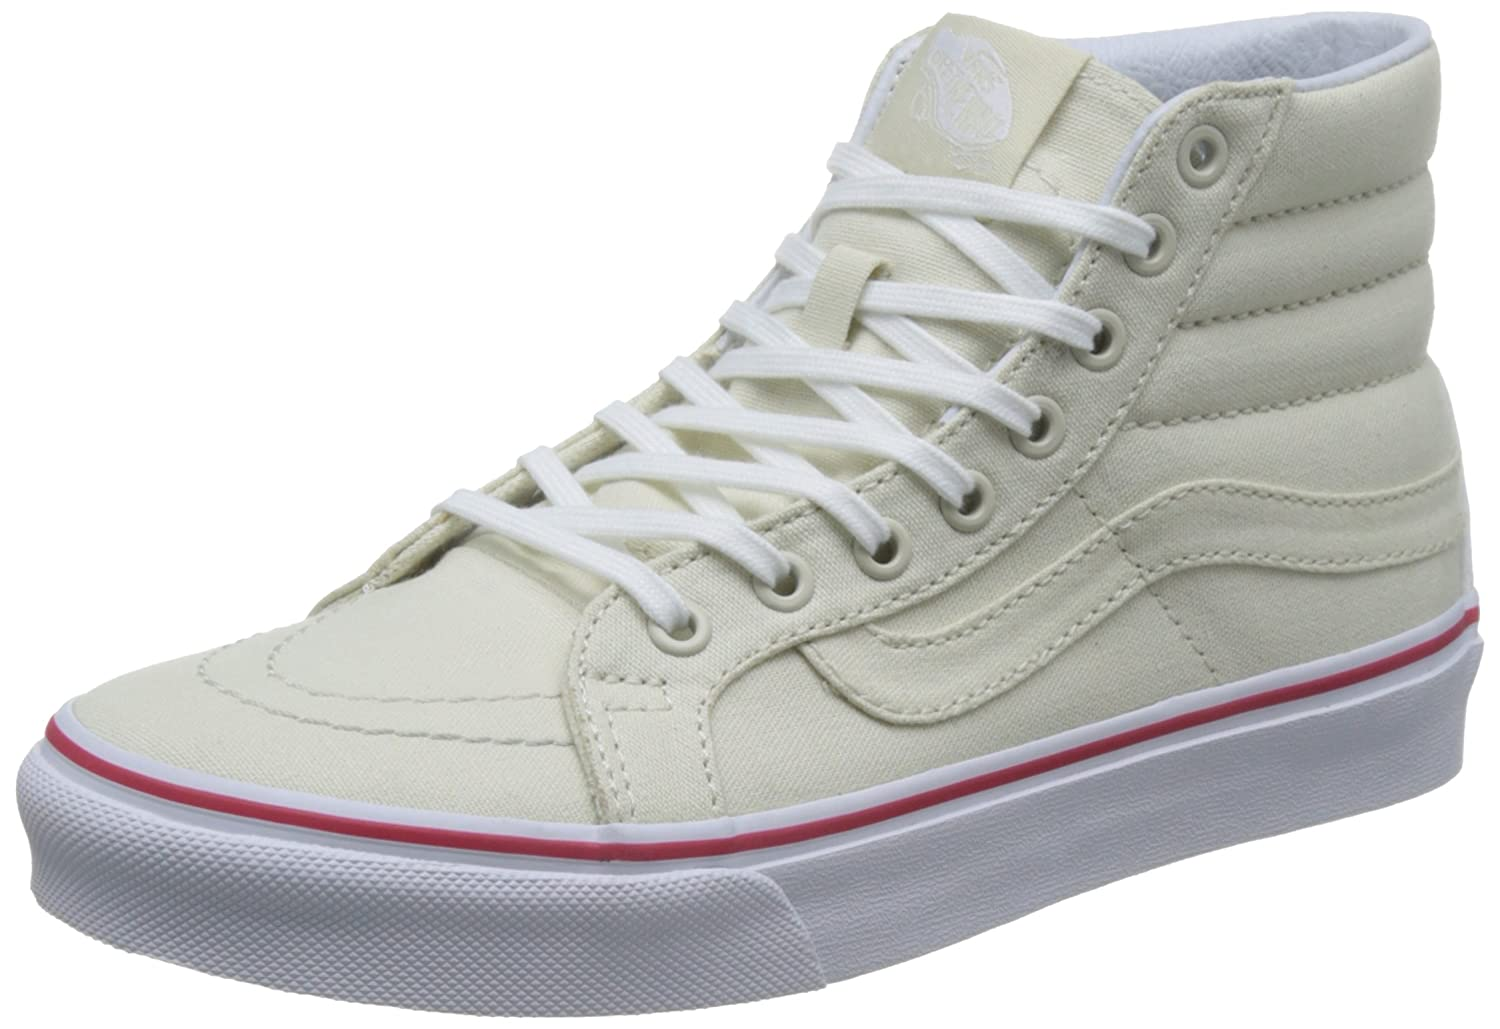 Vans Unisex Sk8-Hi Slim Women's Skate Shoe B01MTIOHJ1 10.5 M US Women / 9 M US Men|Bone/True White